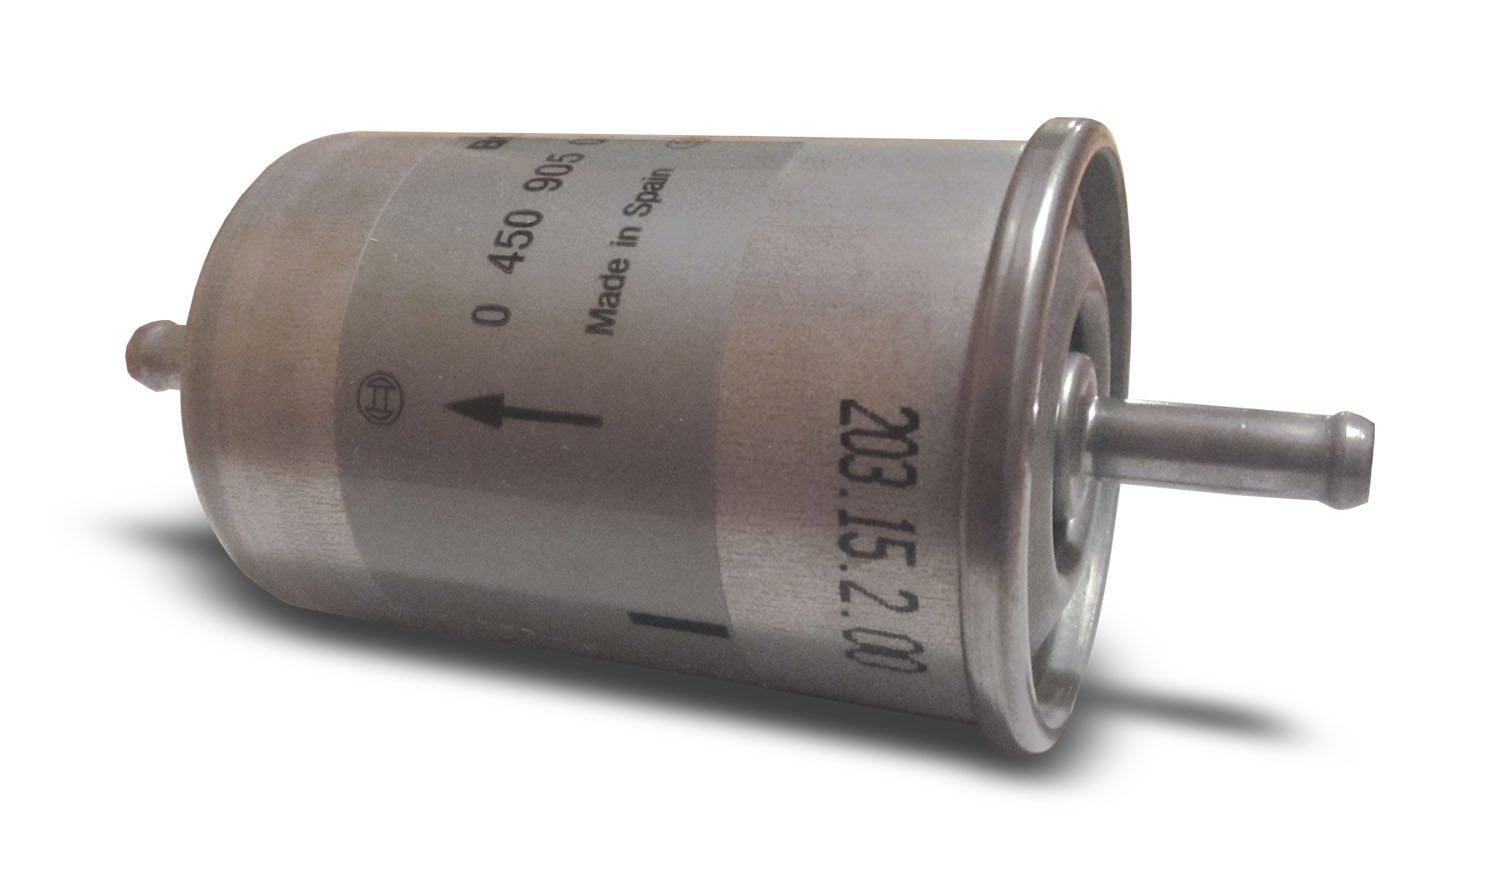 Amazon.com: Polaris Sportsman 700 EFI 2004 2005 Fuel Filter - 2520223:  Automotive